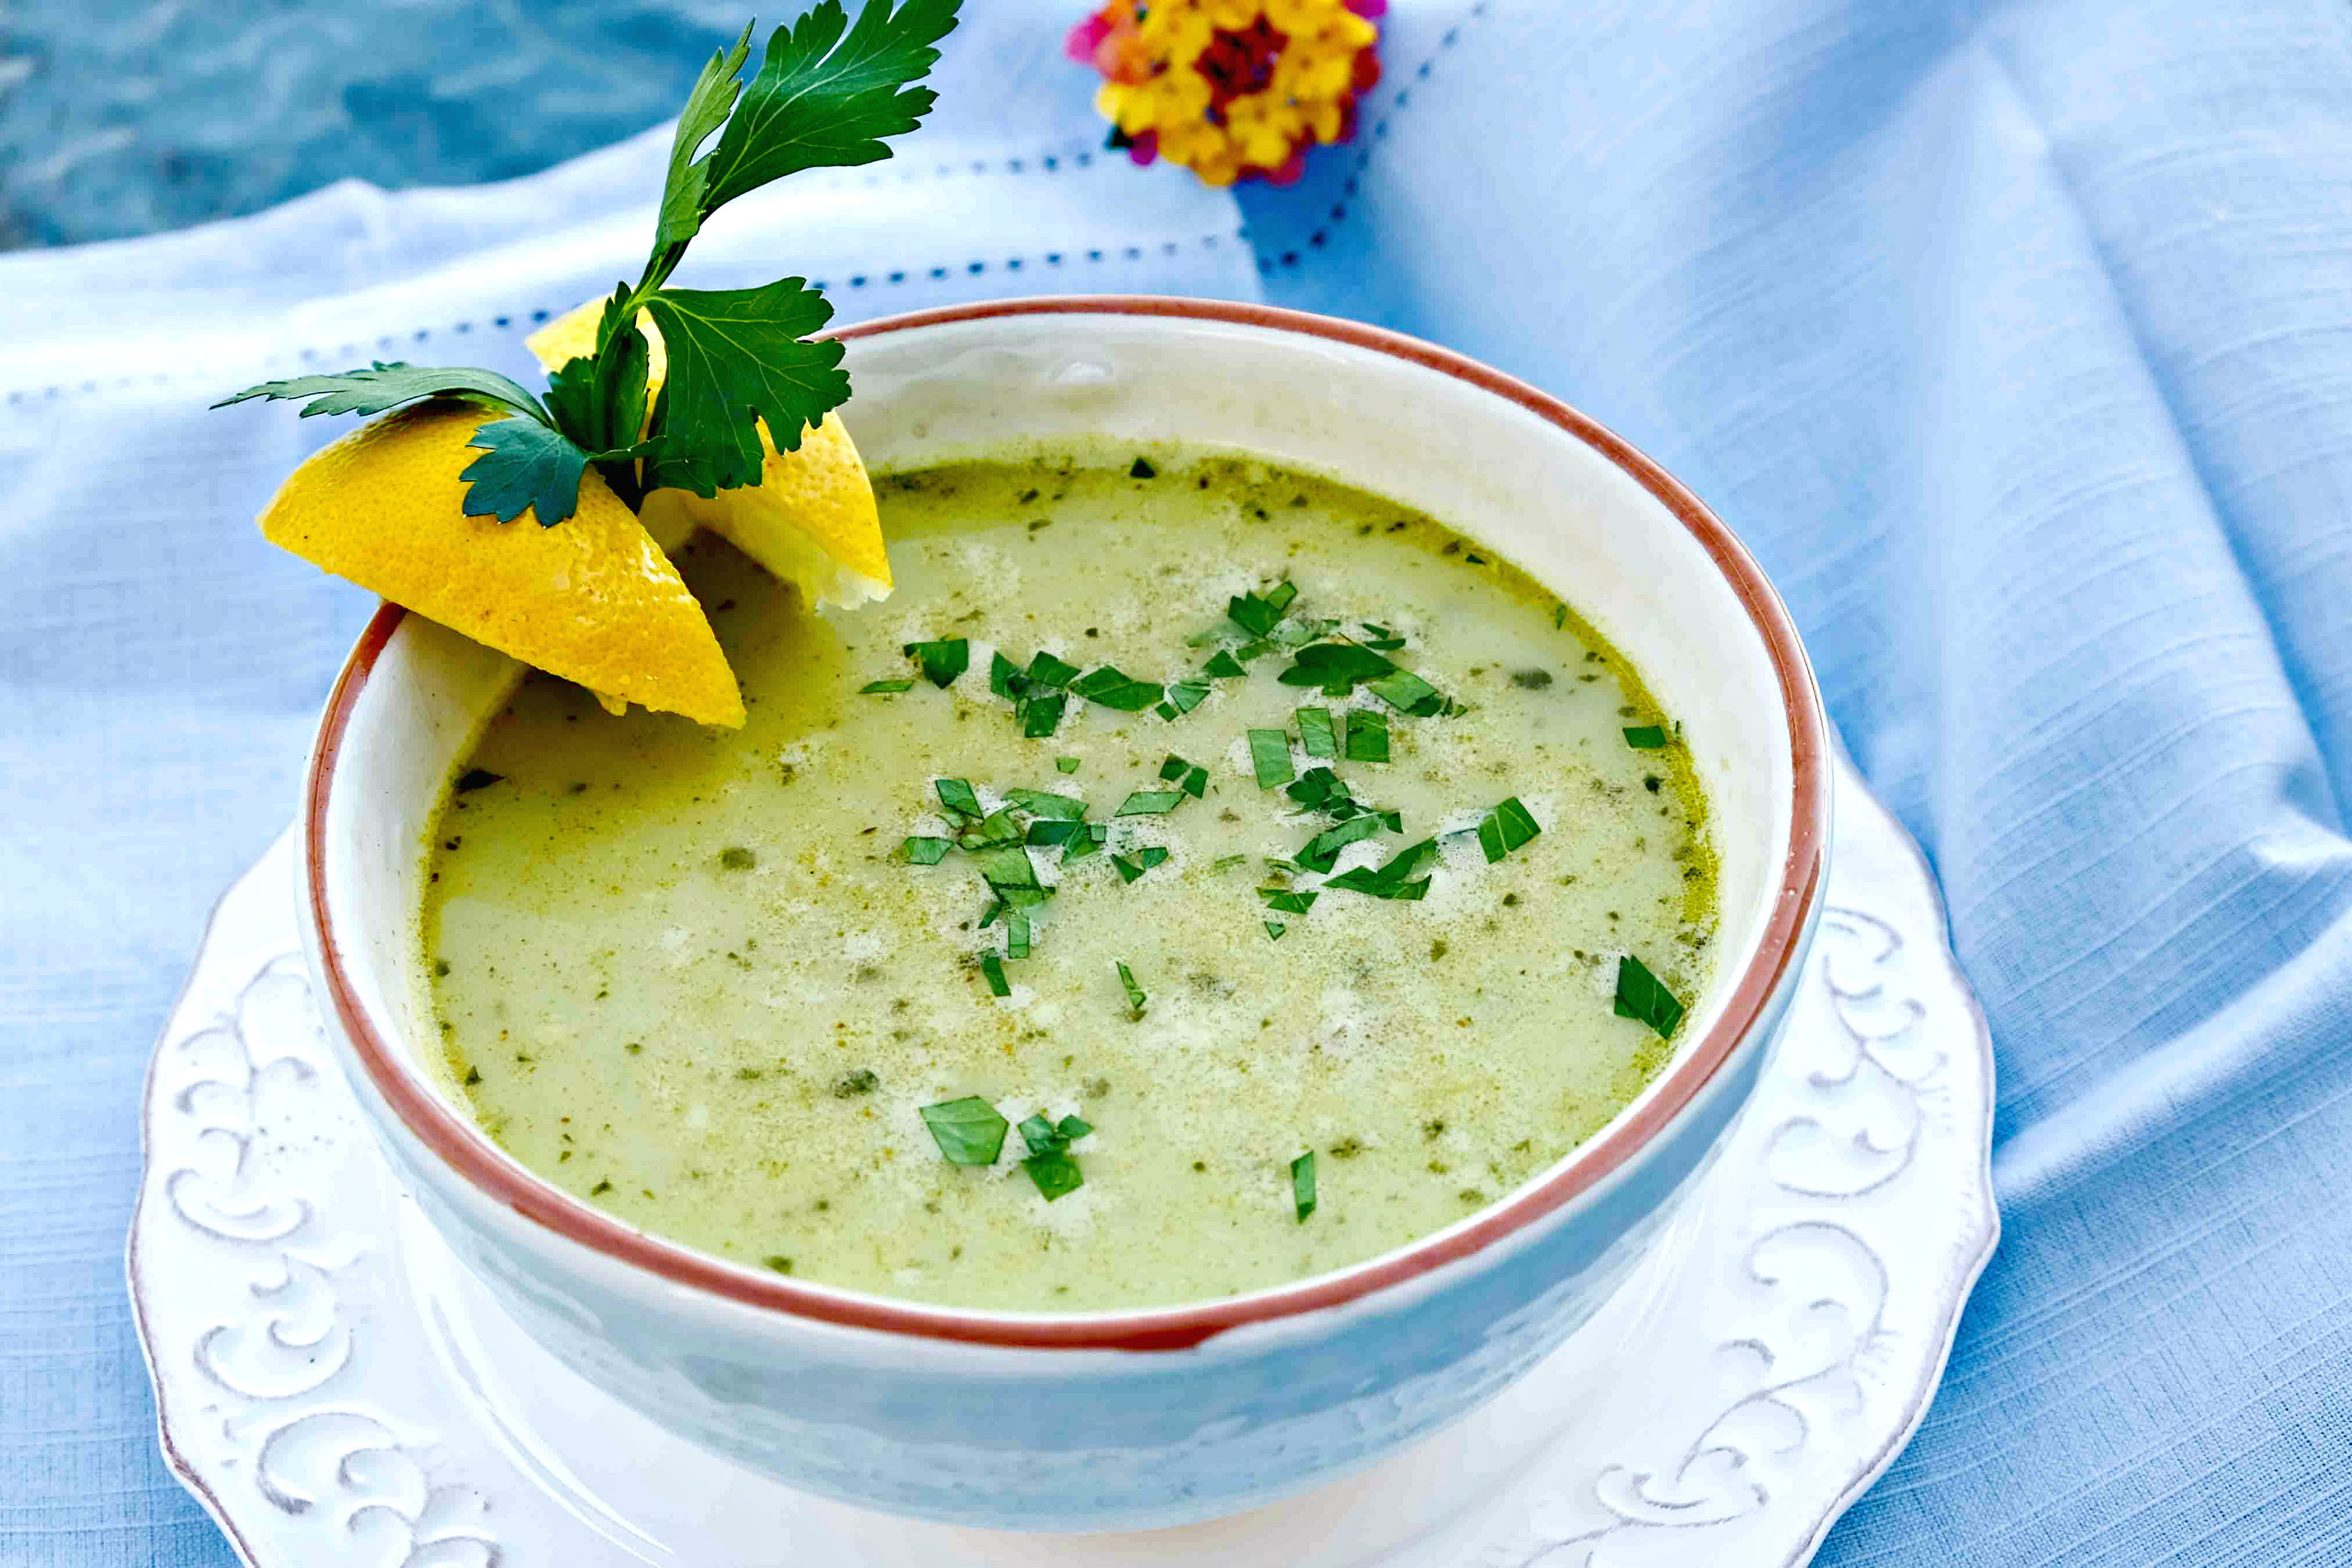 Detox Chickpea and Parsley Soup